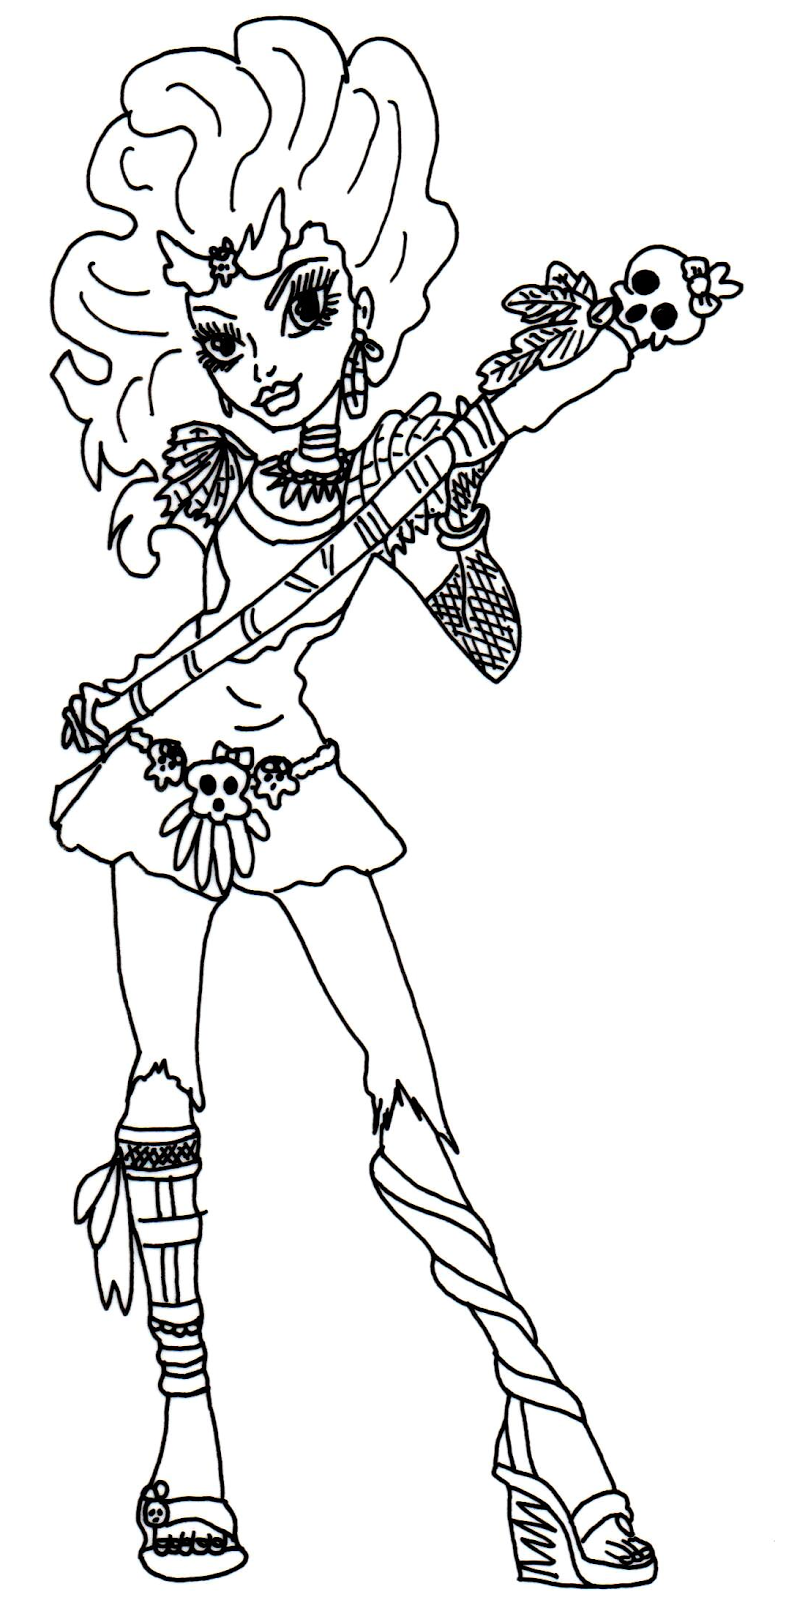 jane coloring pages - photo#5